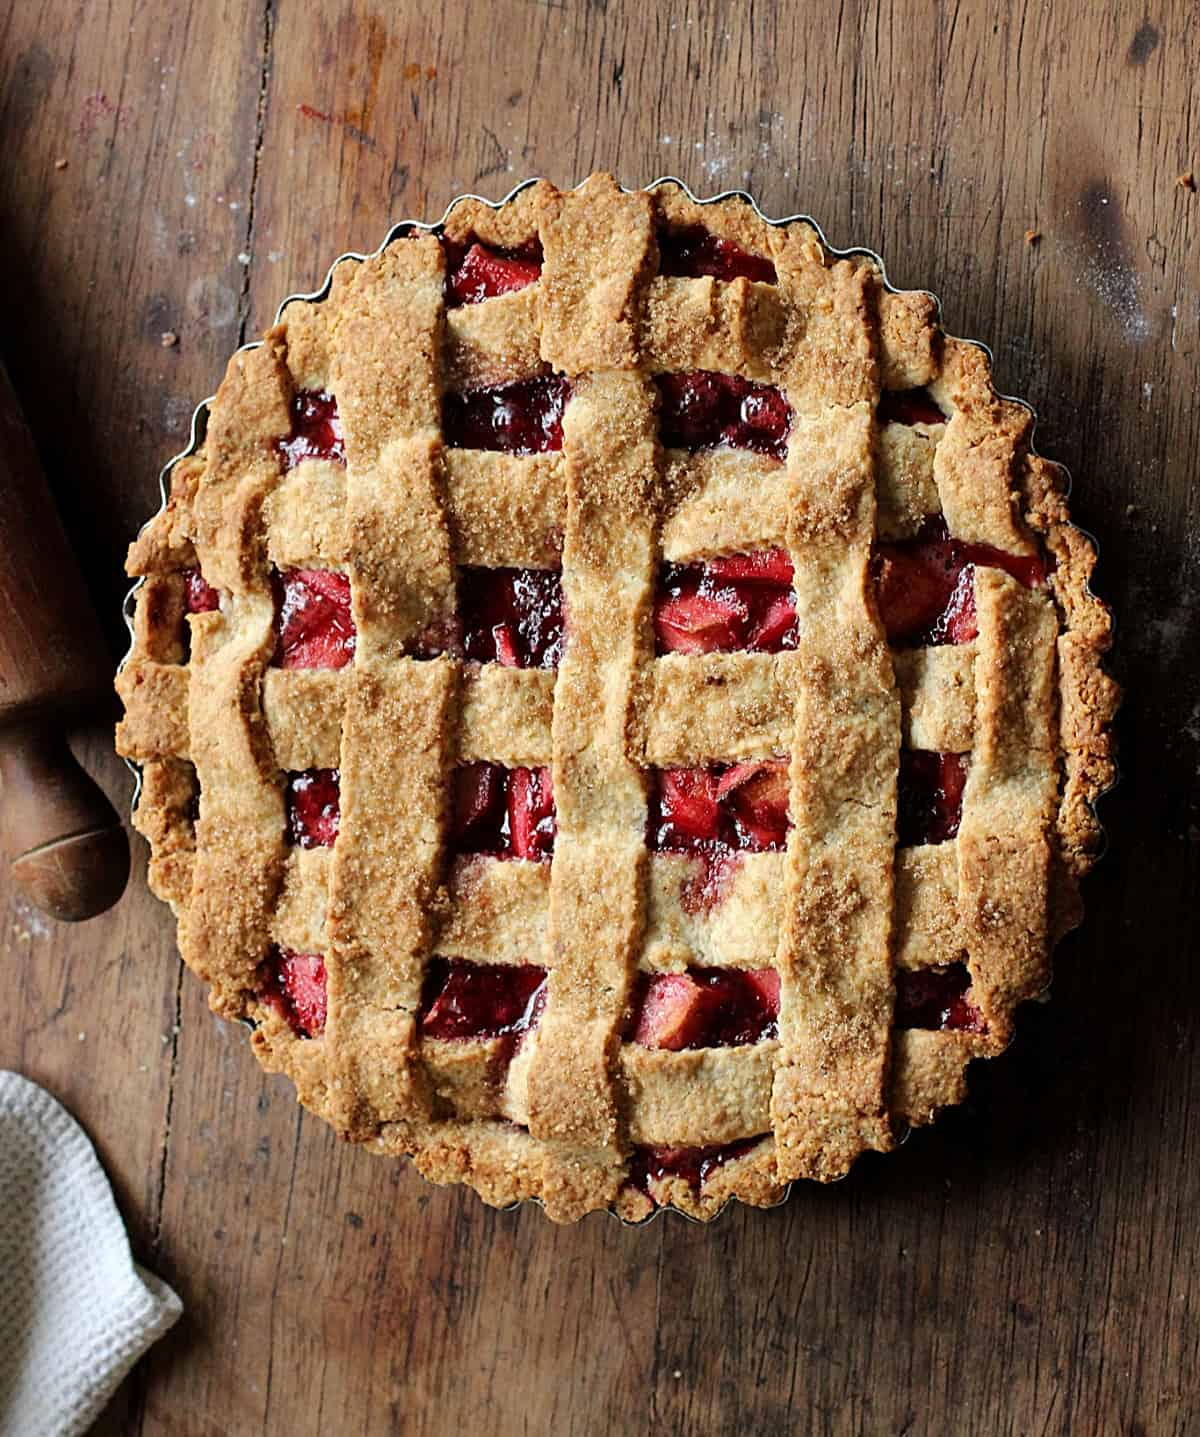 Whole lattice Pie on wooden table, rolling pin